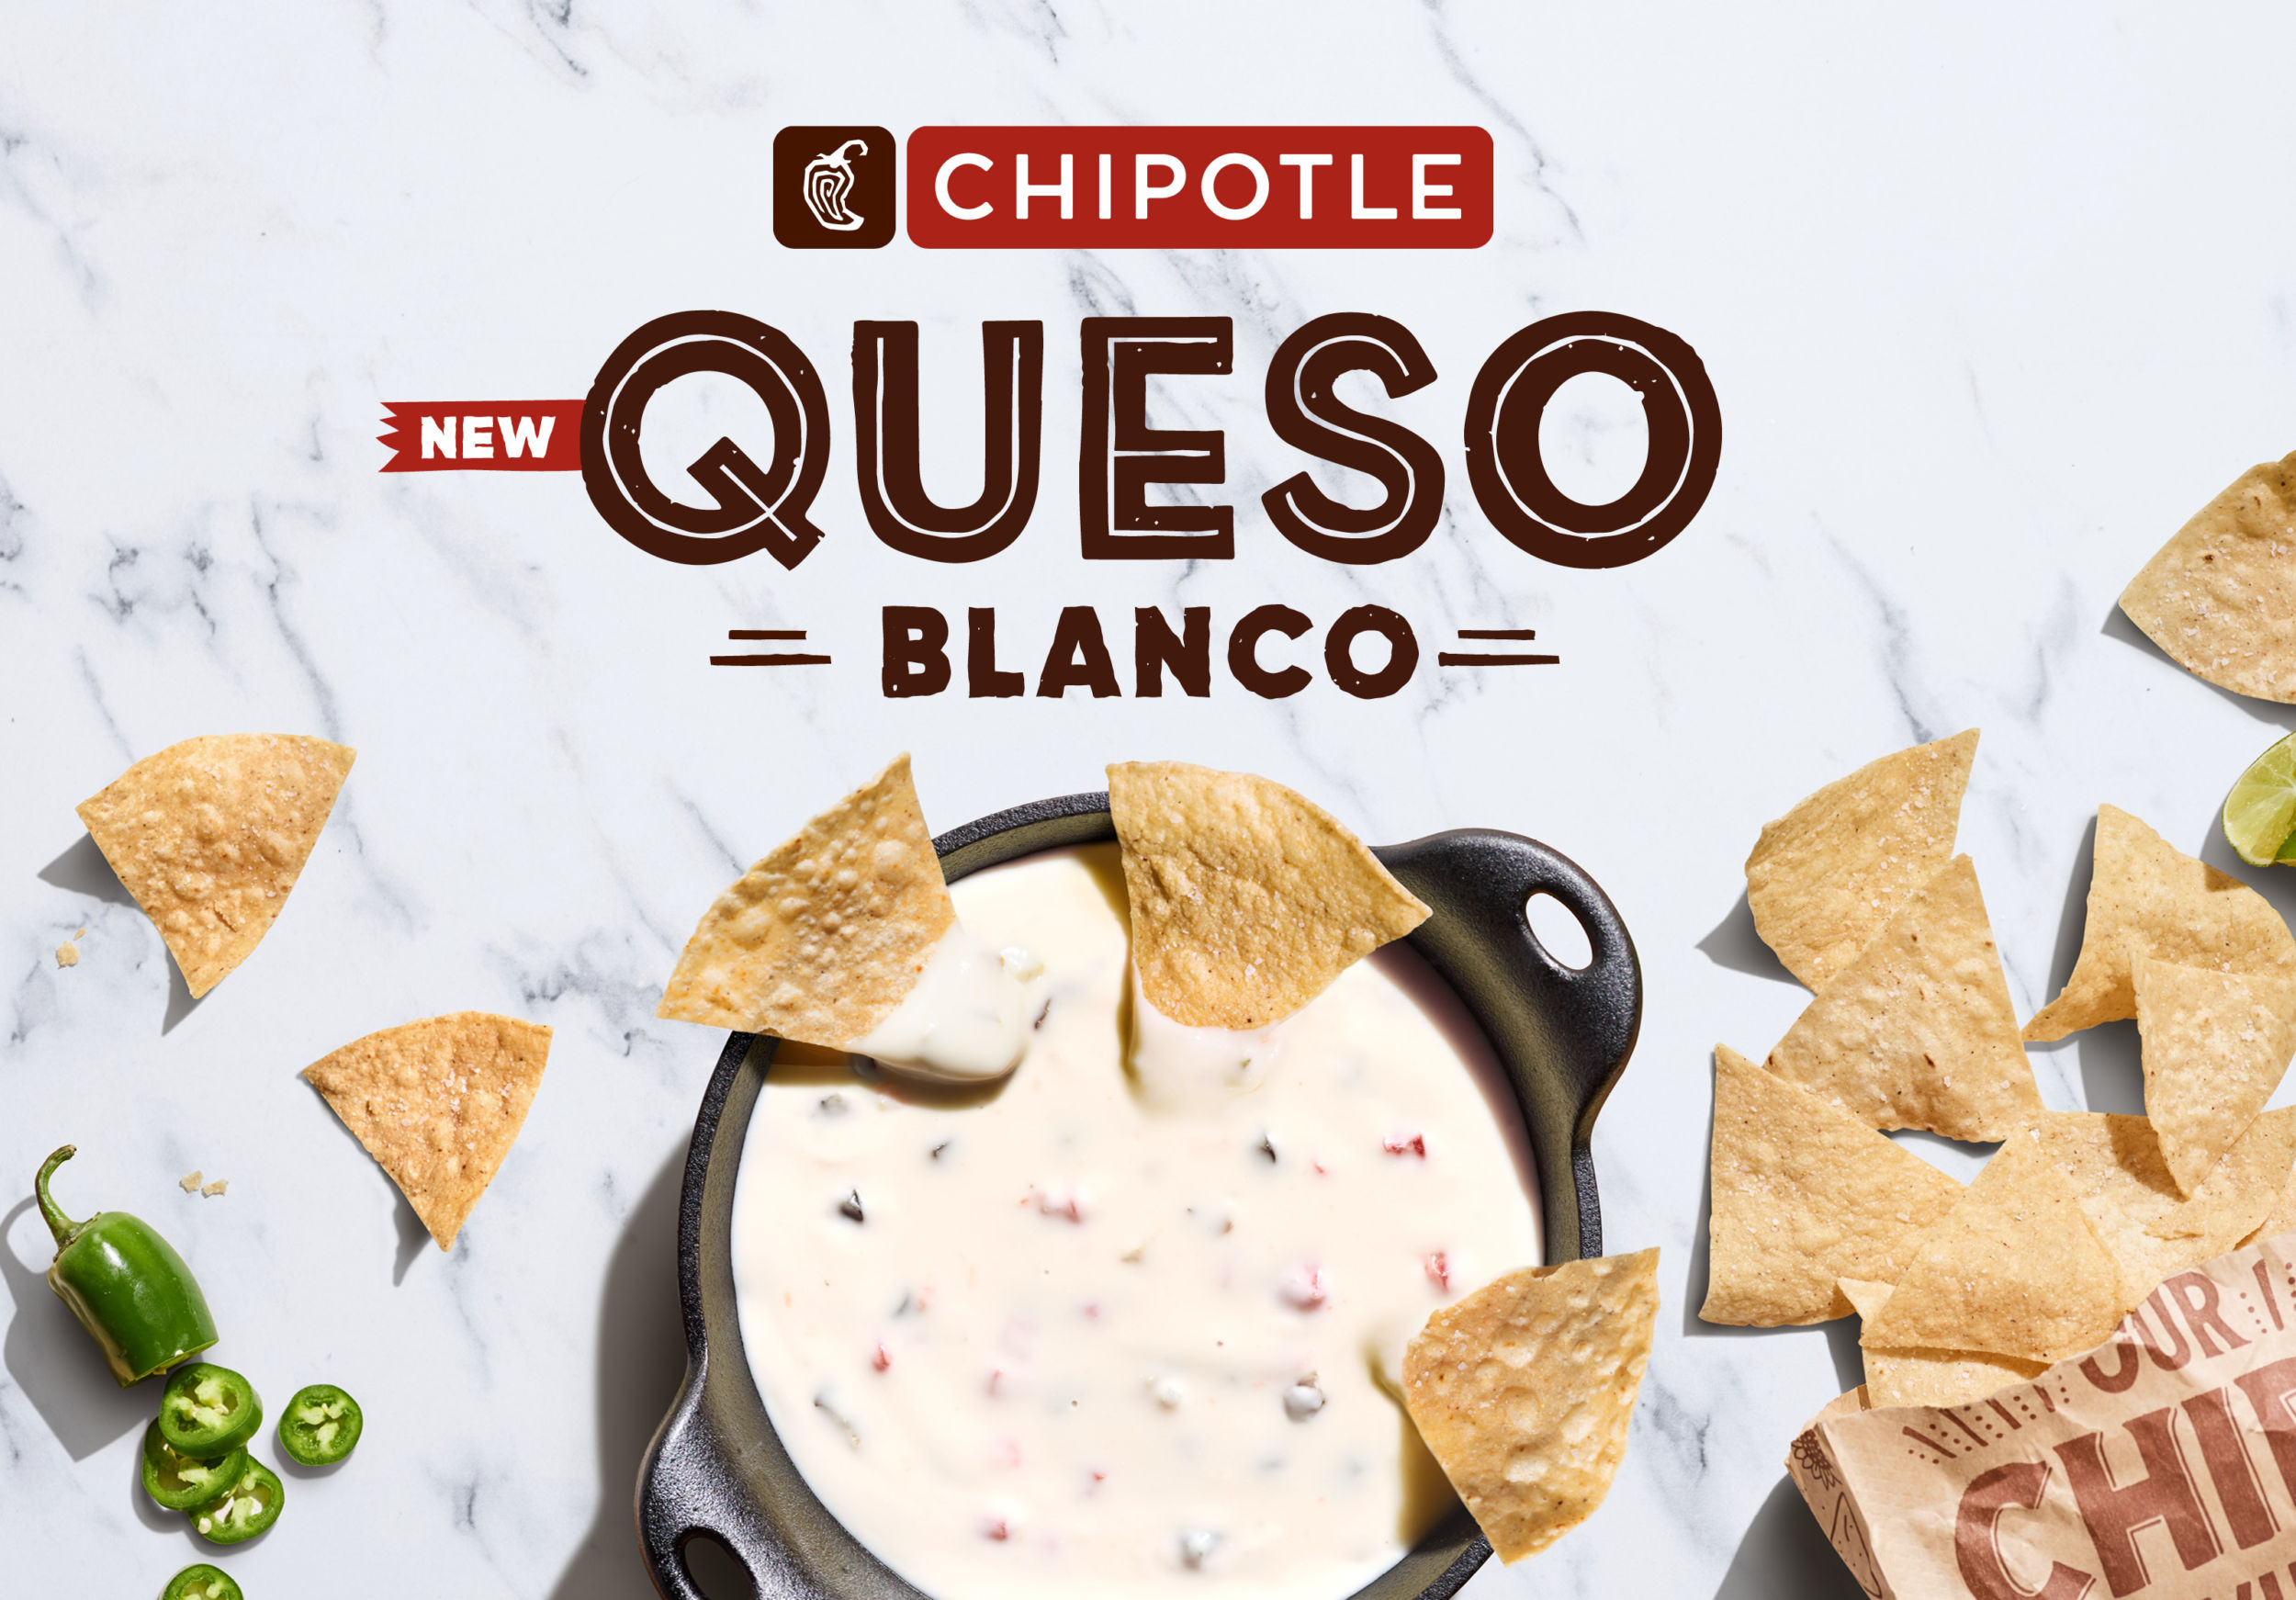 Chipotle Queso Blanco now is rolling out nationwide